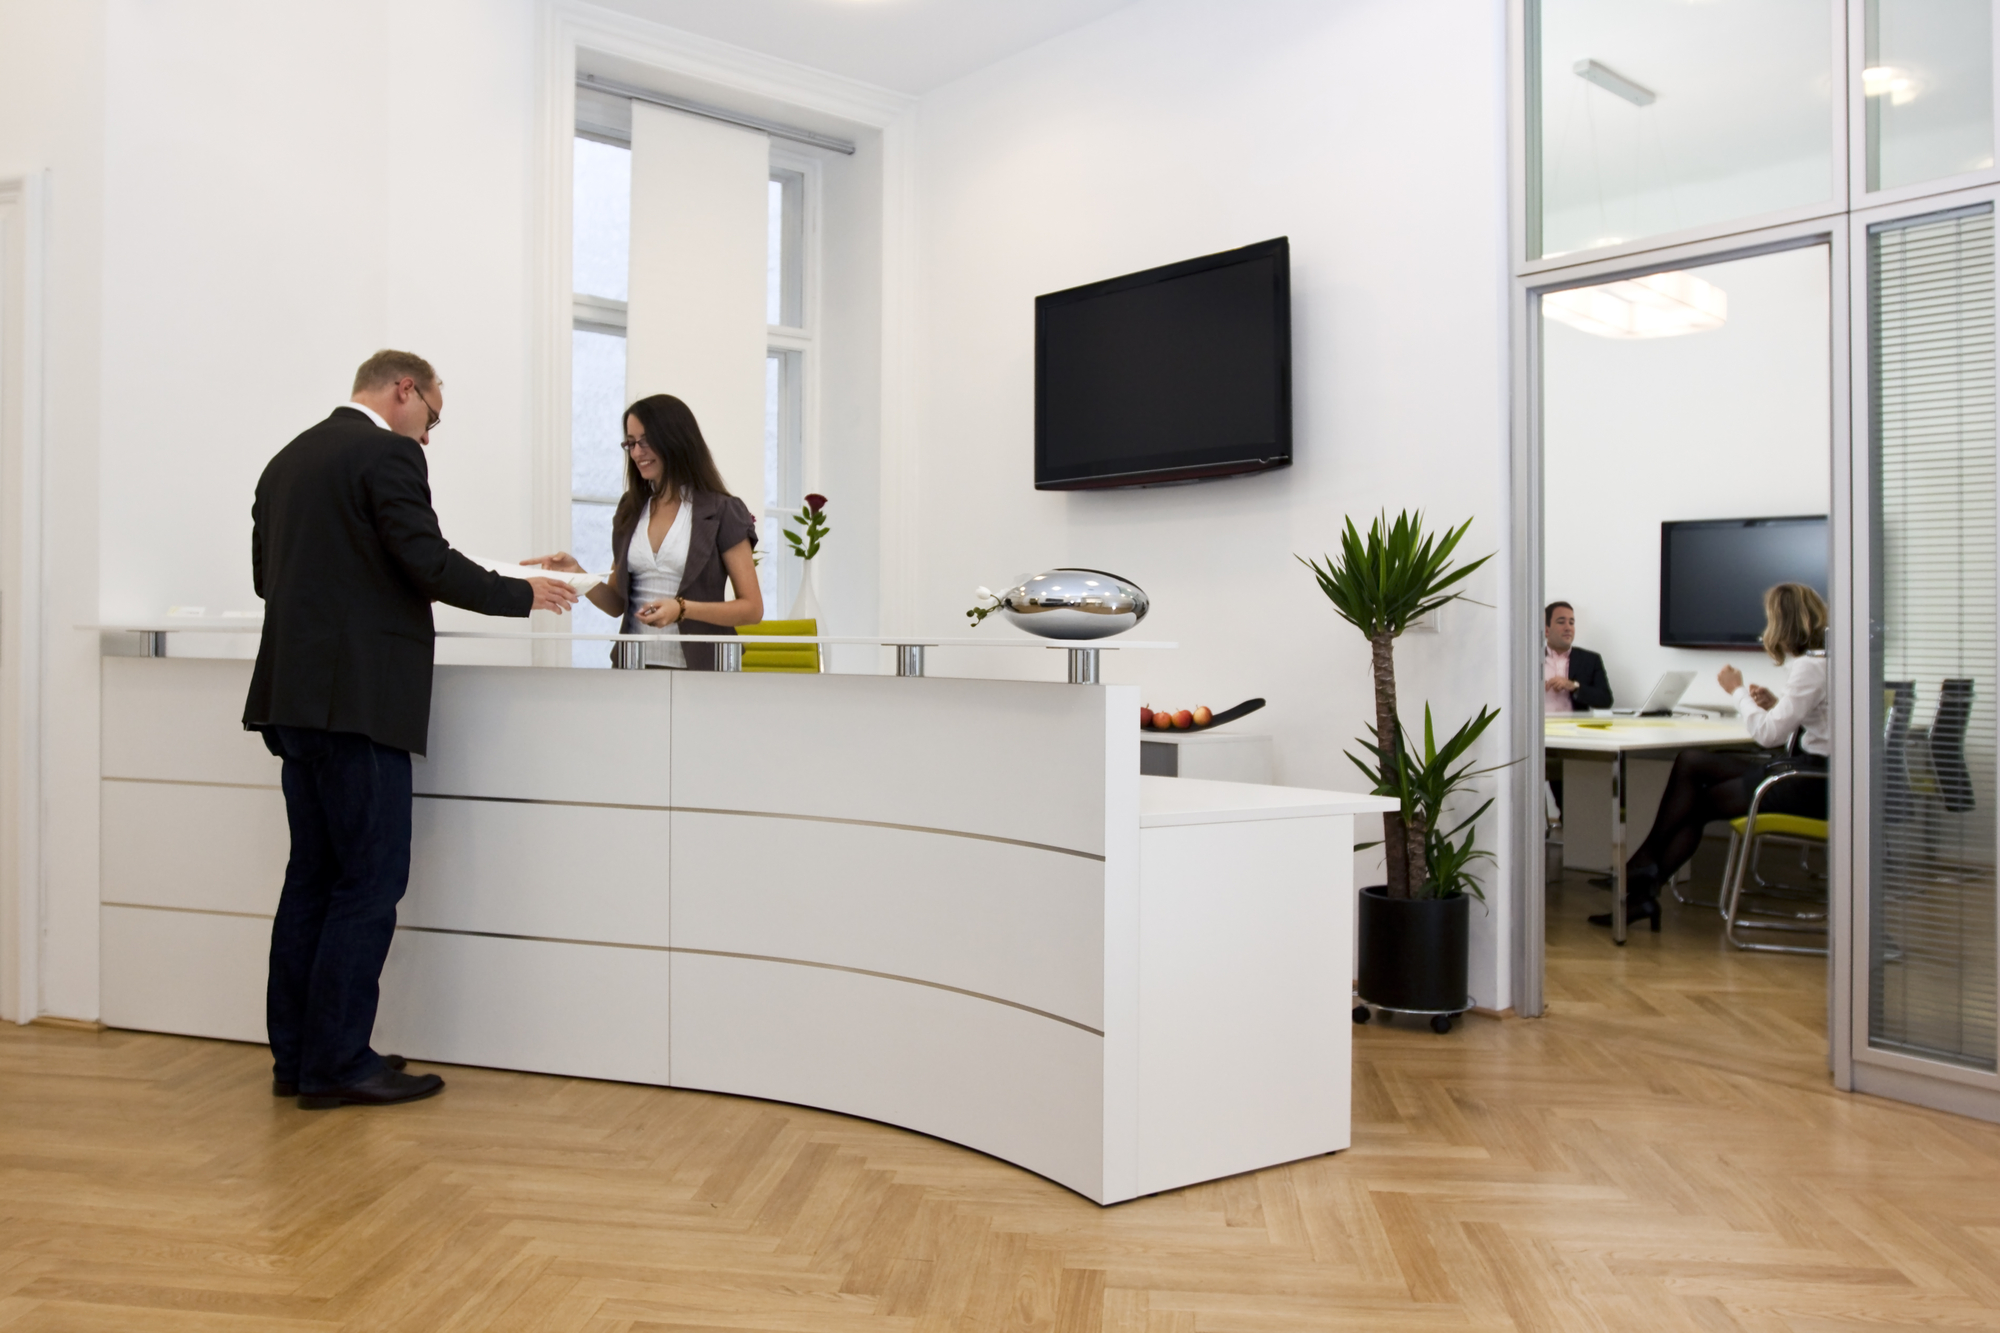 Reception Desk With Concierge In Office Building For Property Manager Insider